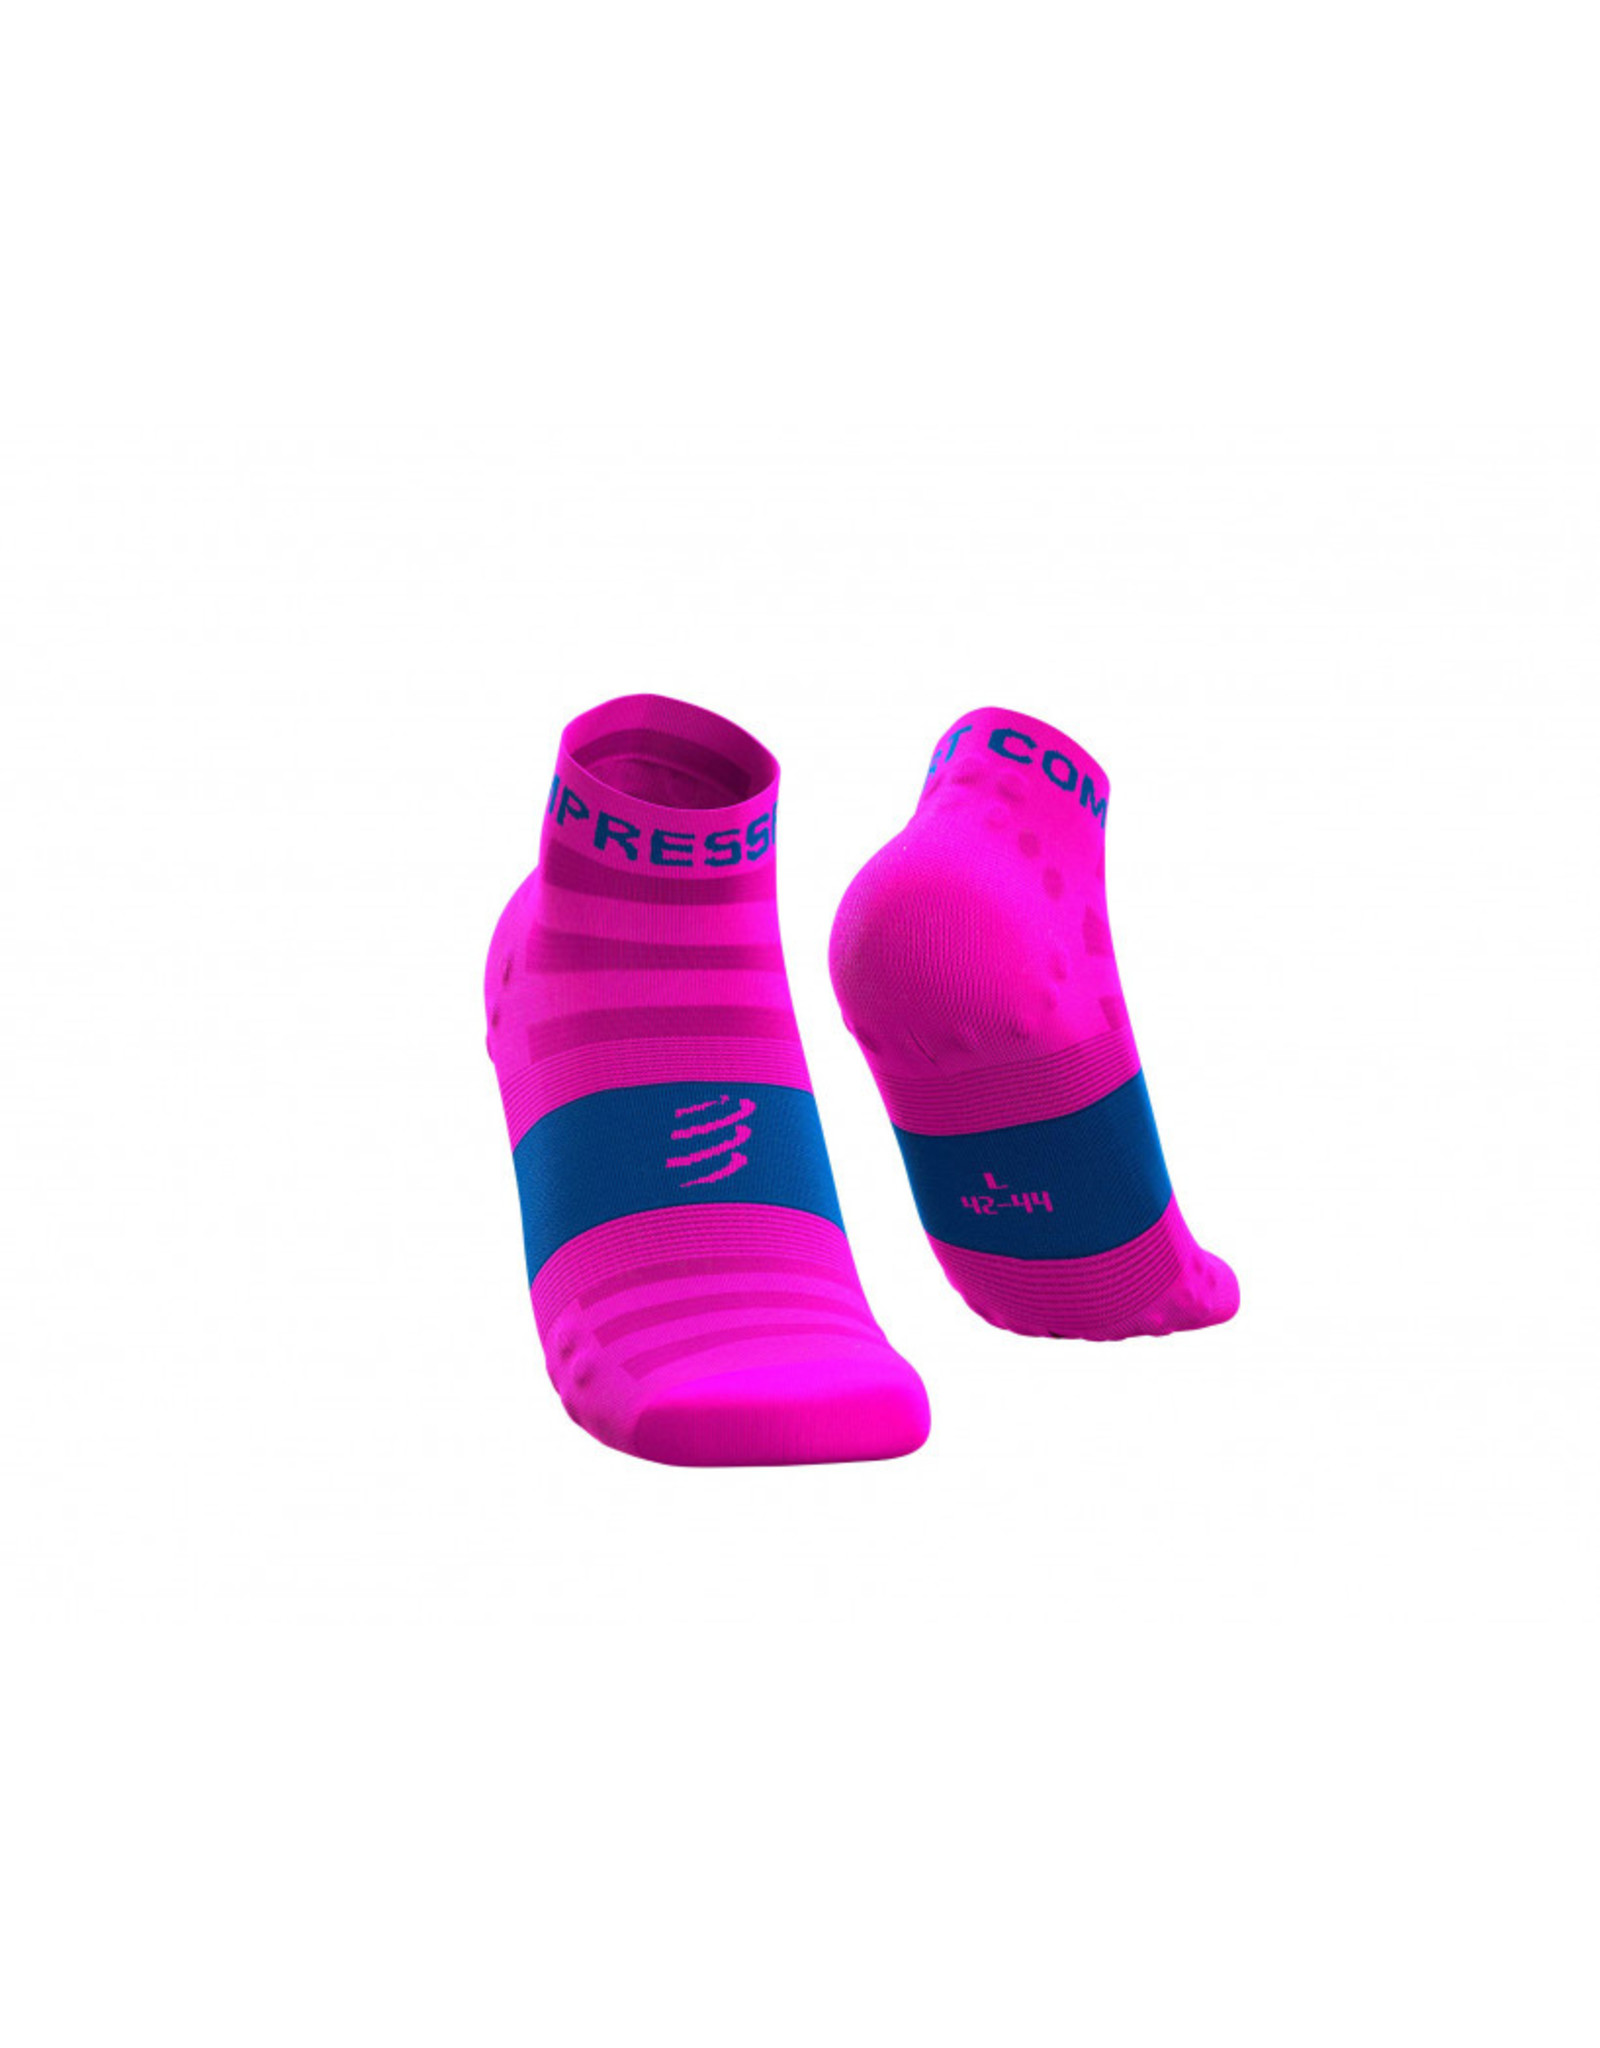 Compressport Pro Racing Socks V3.0 Ultralight Run Low Chaussettes De Running - Rose